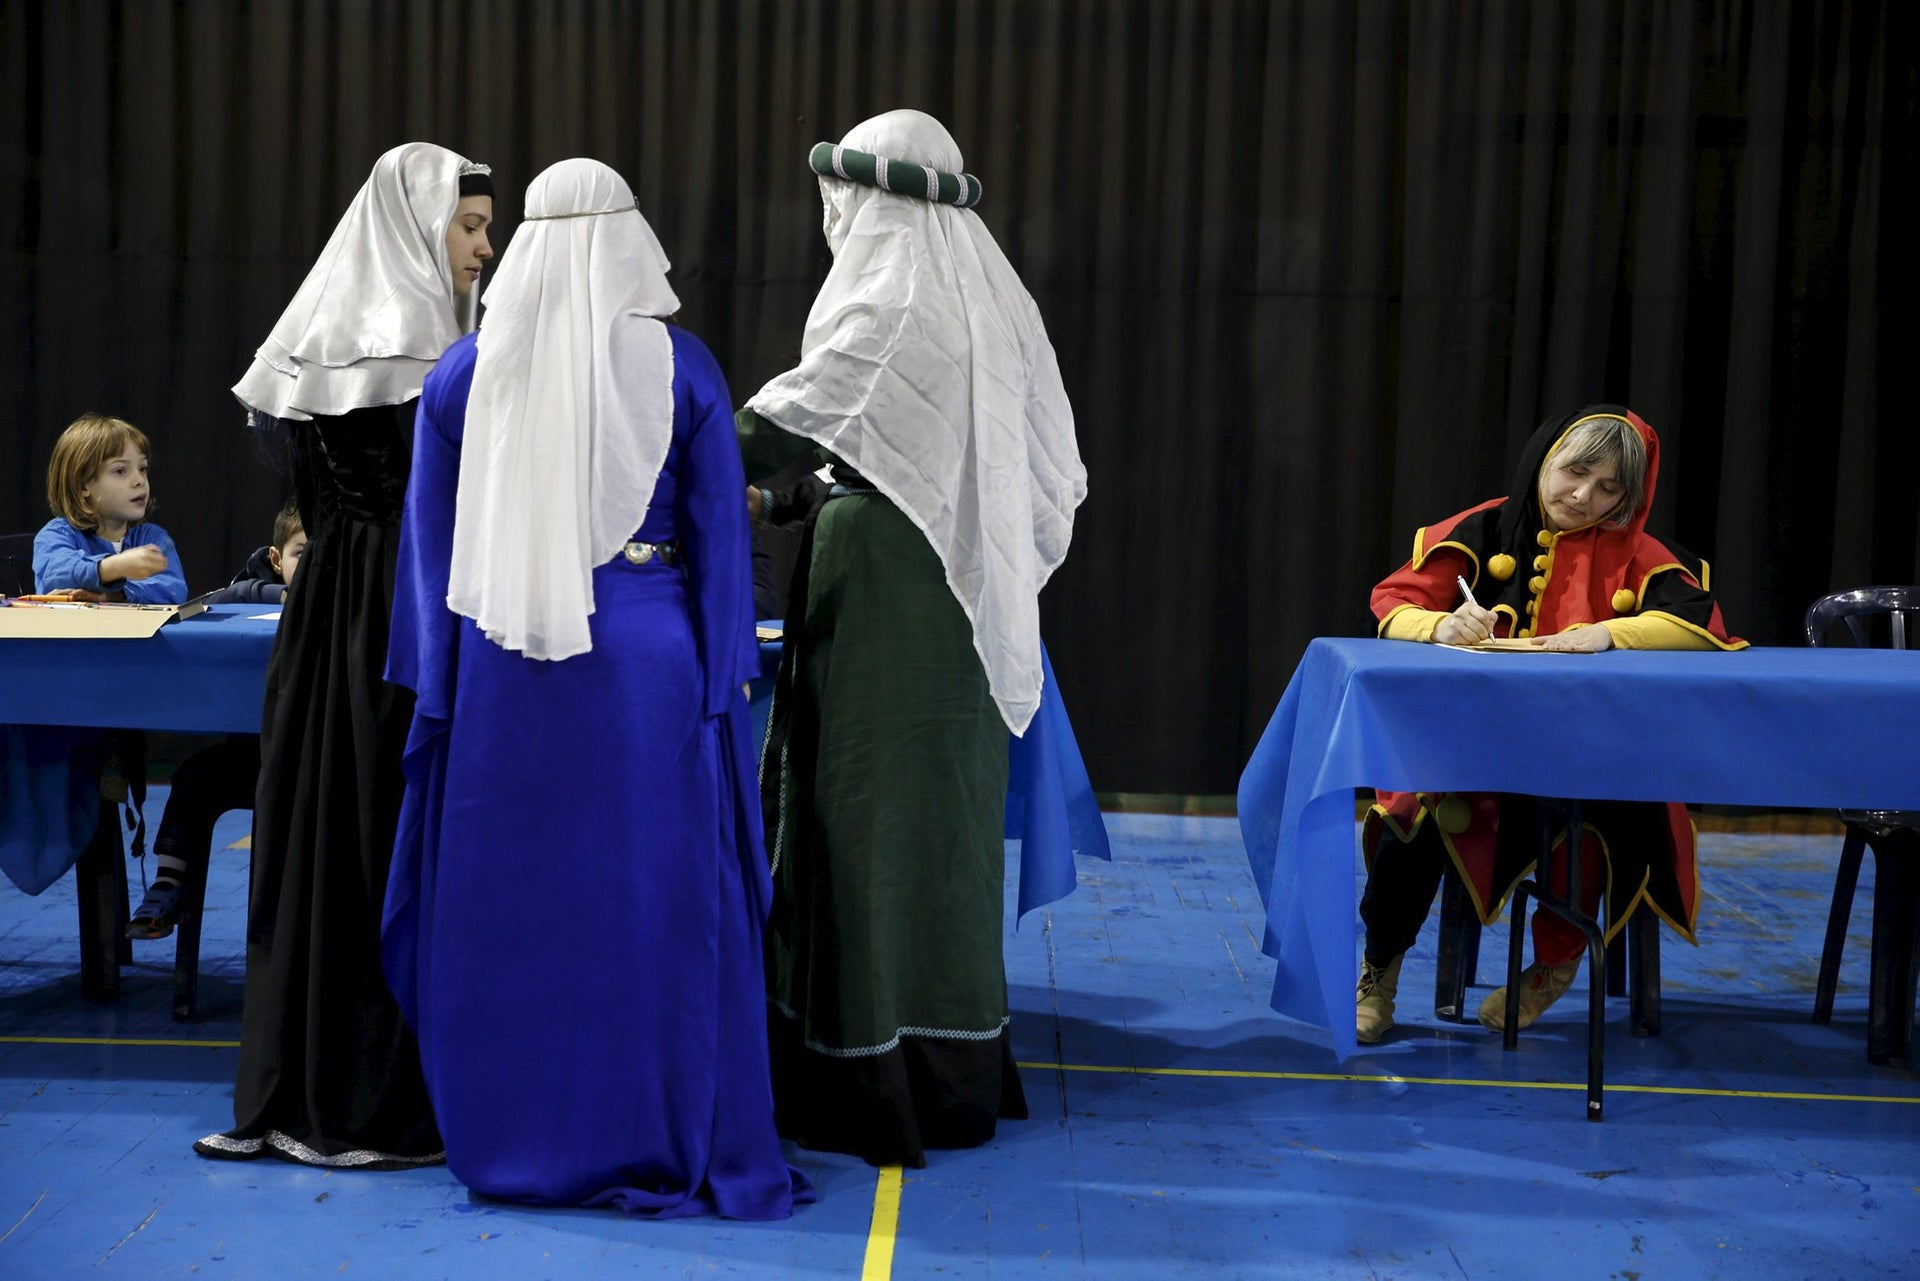 Women in historical dresses stand together during an international medieval tournament in Tel Aviv, January 23, 2016.